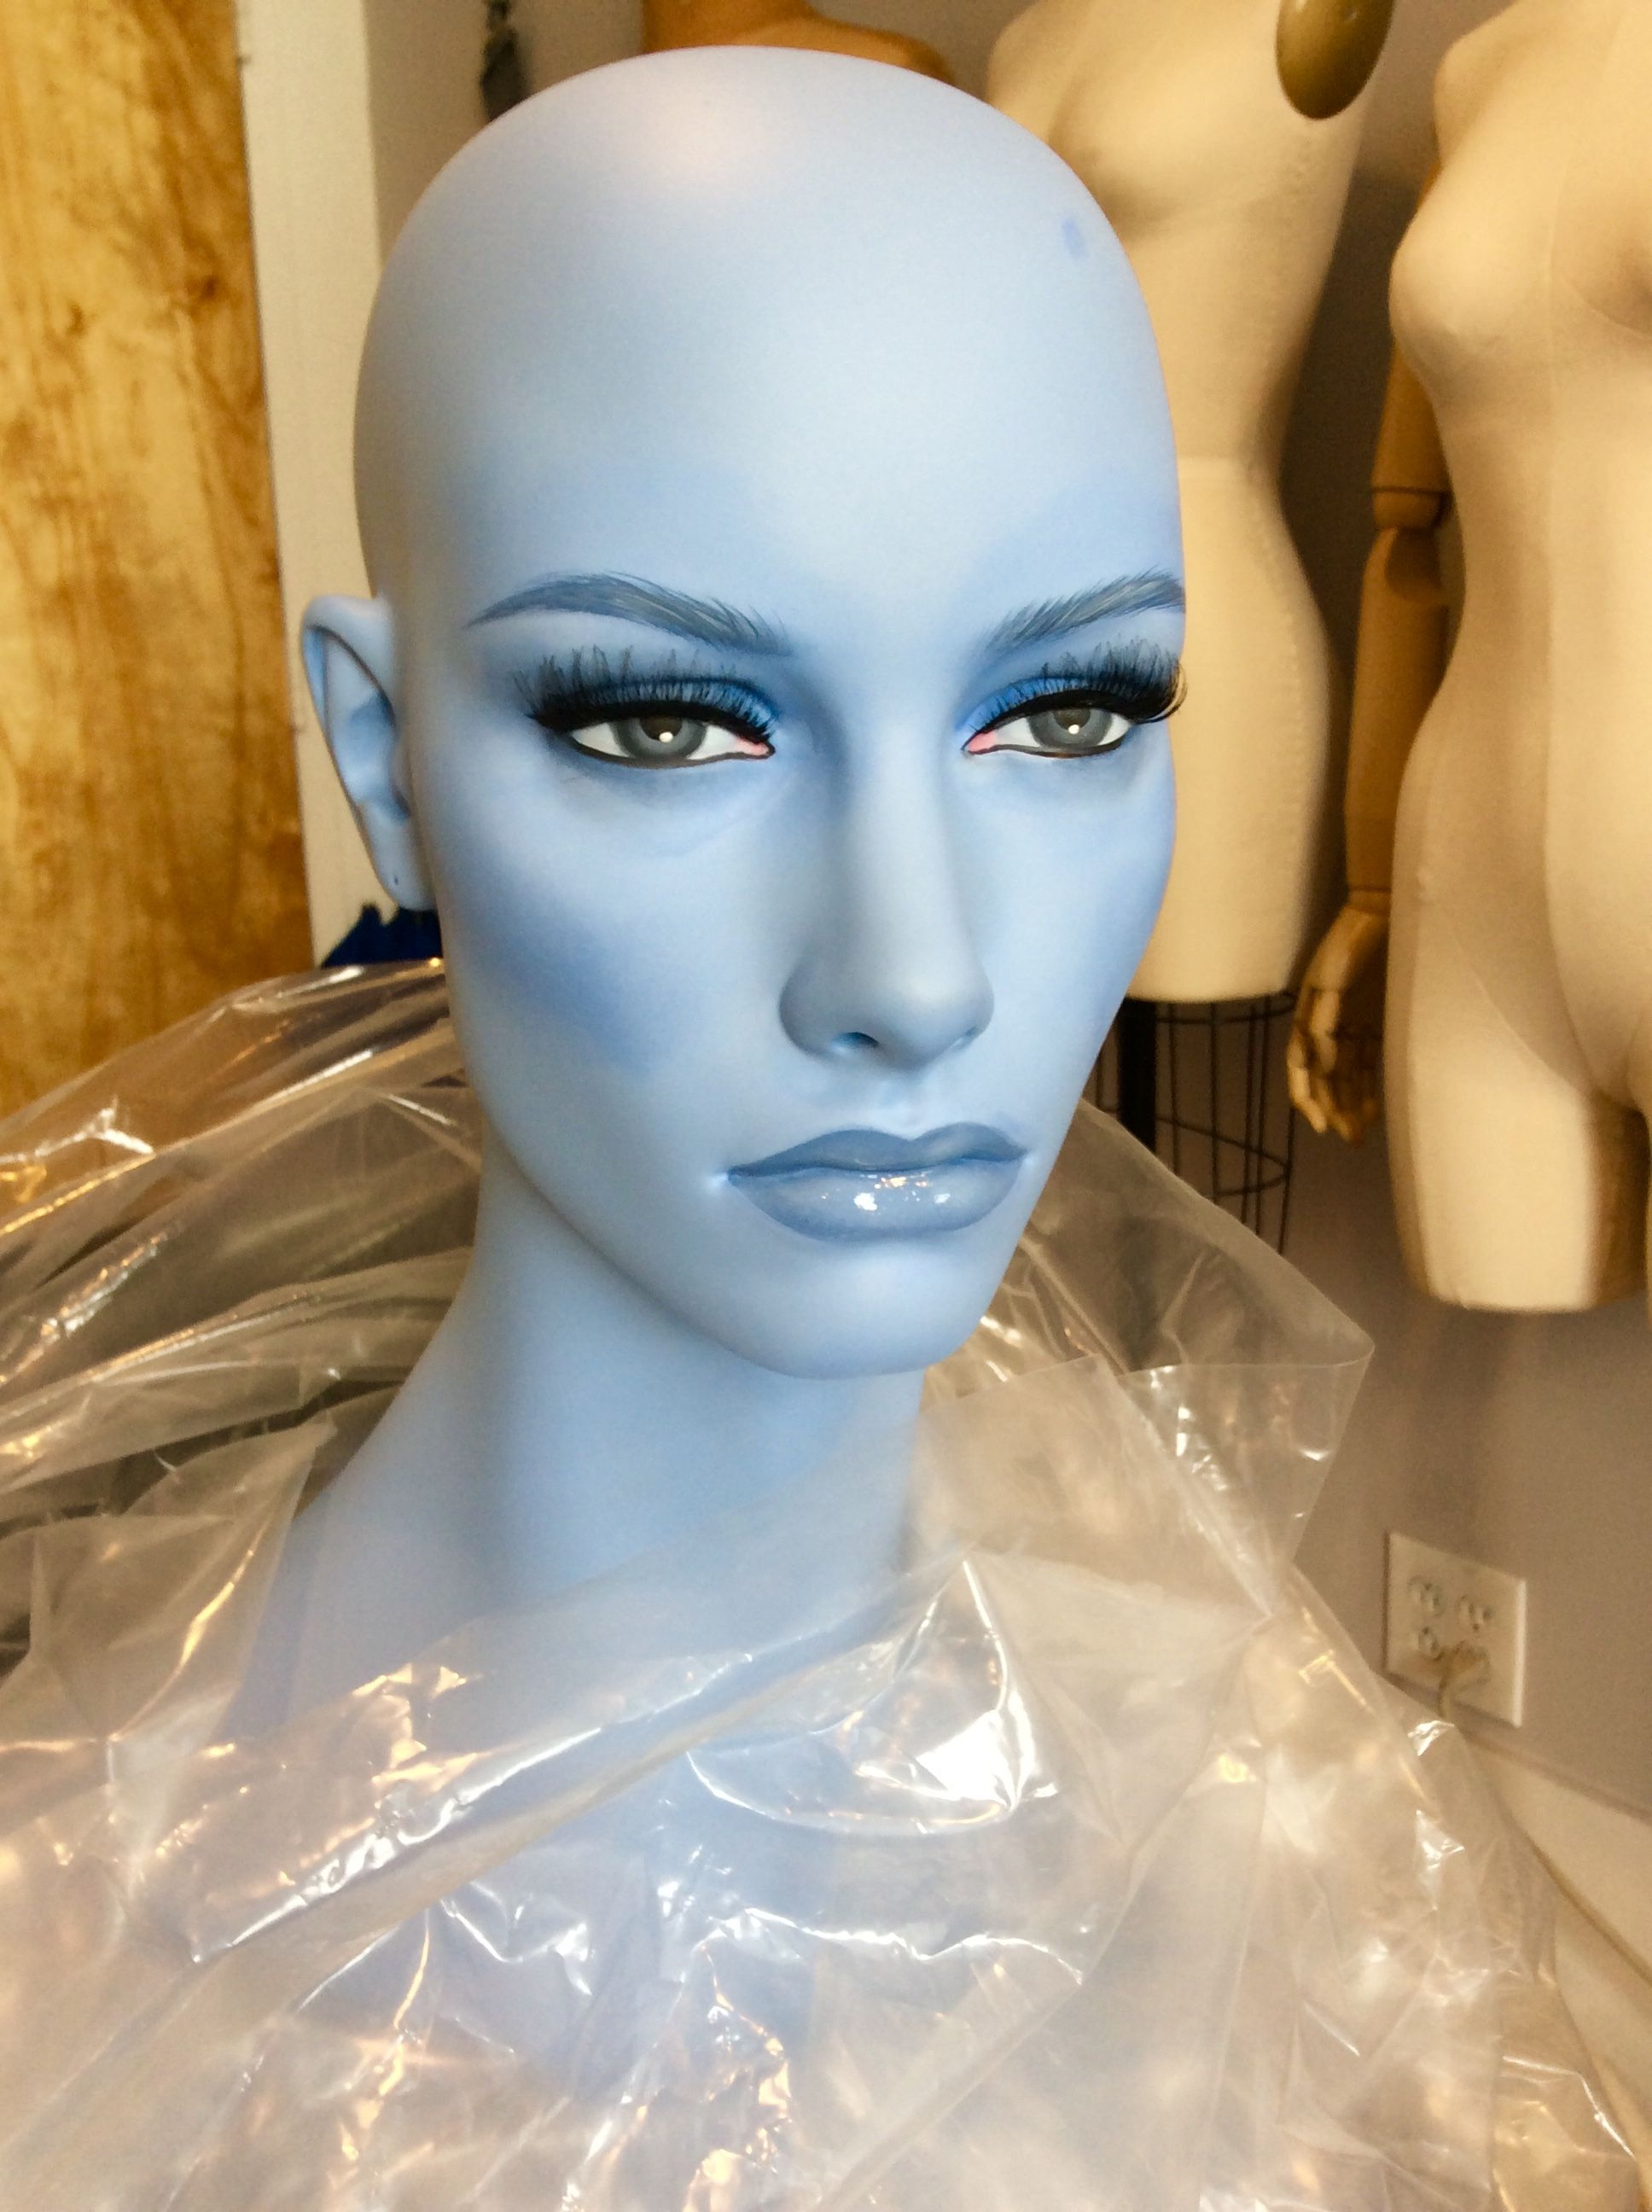 Pin by Stephen R. Russomano on Mannequin makeup done on